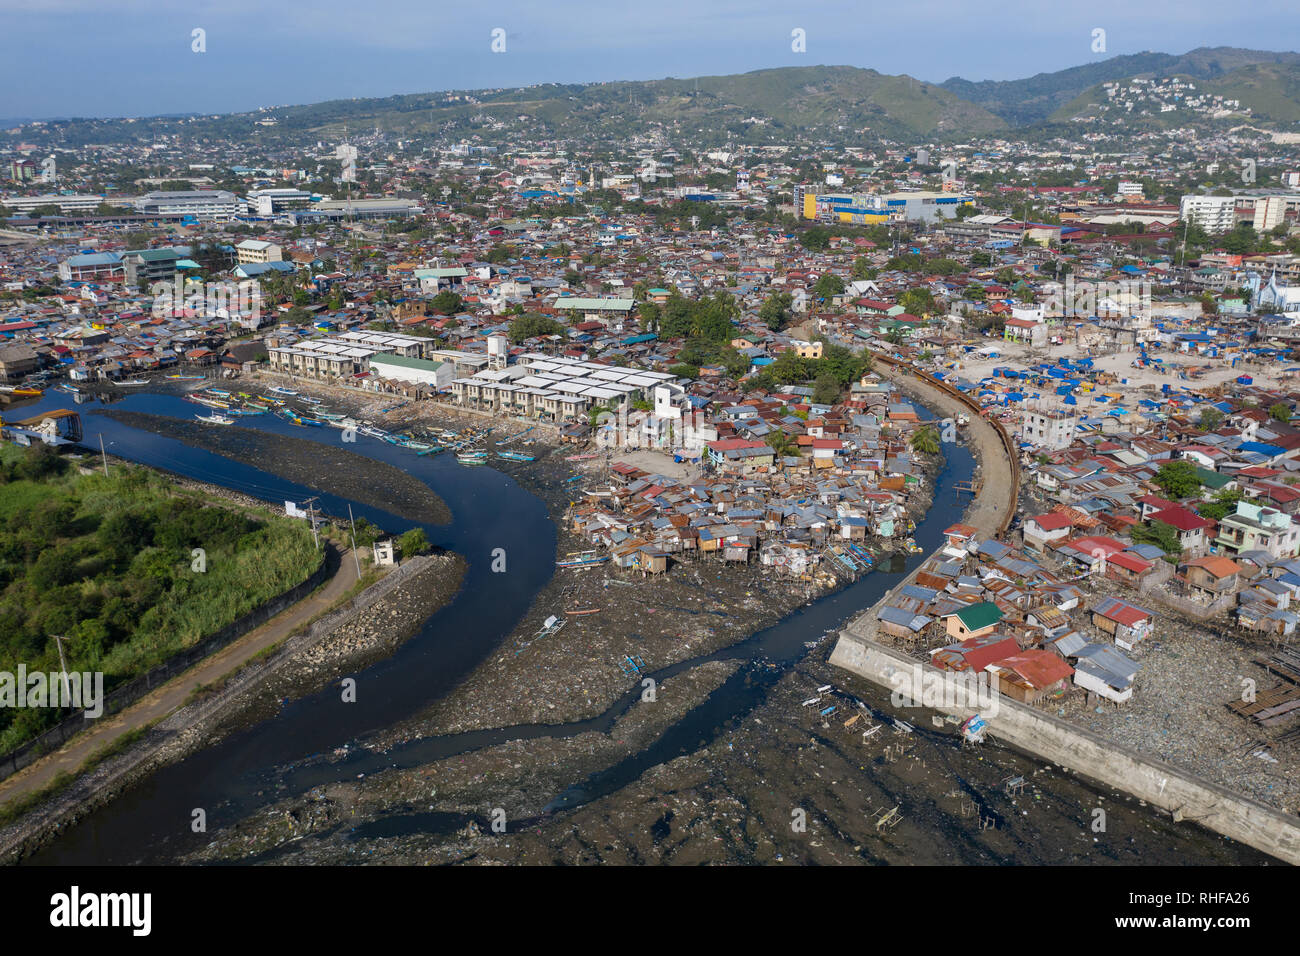 3/2/2019 Cebu City.Numerous Informal settlements such as this one in the foreground are located on the coastal City outskirts.Locally known as squatte - Stock Image